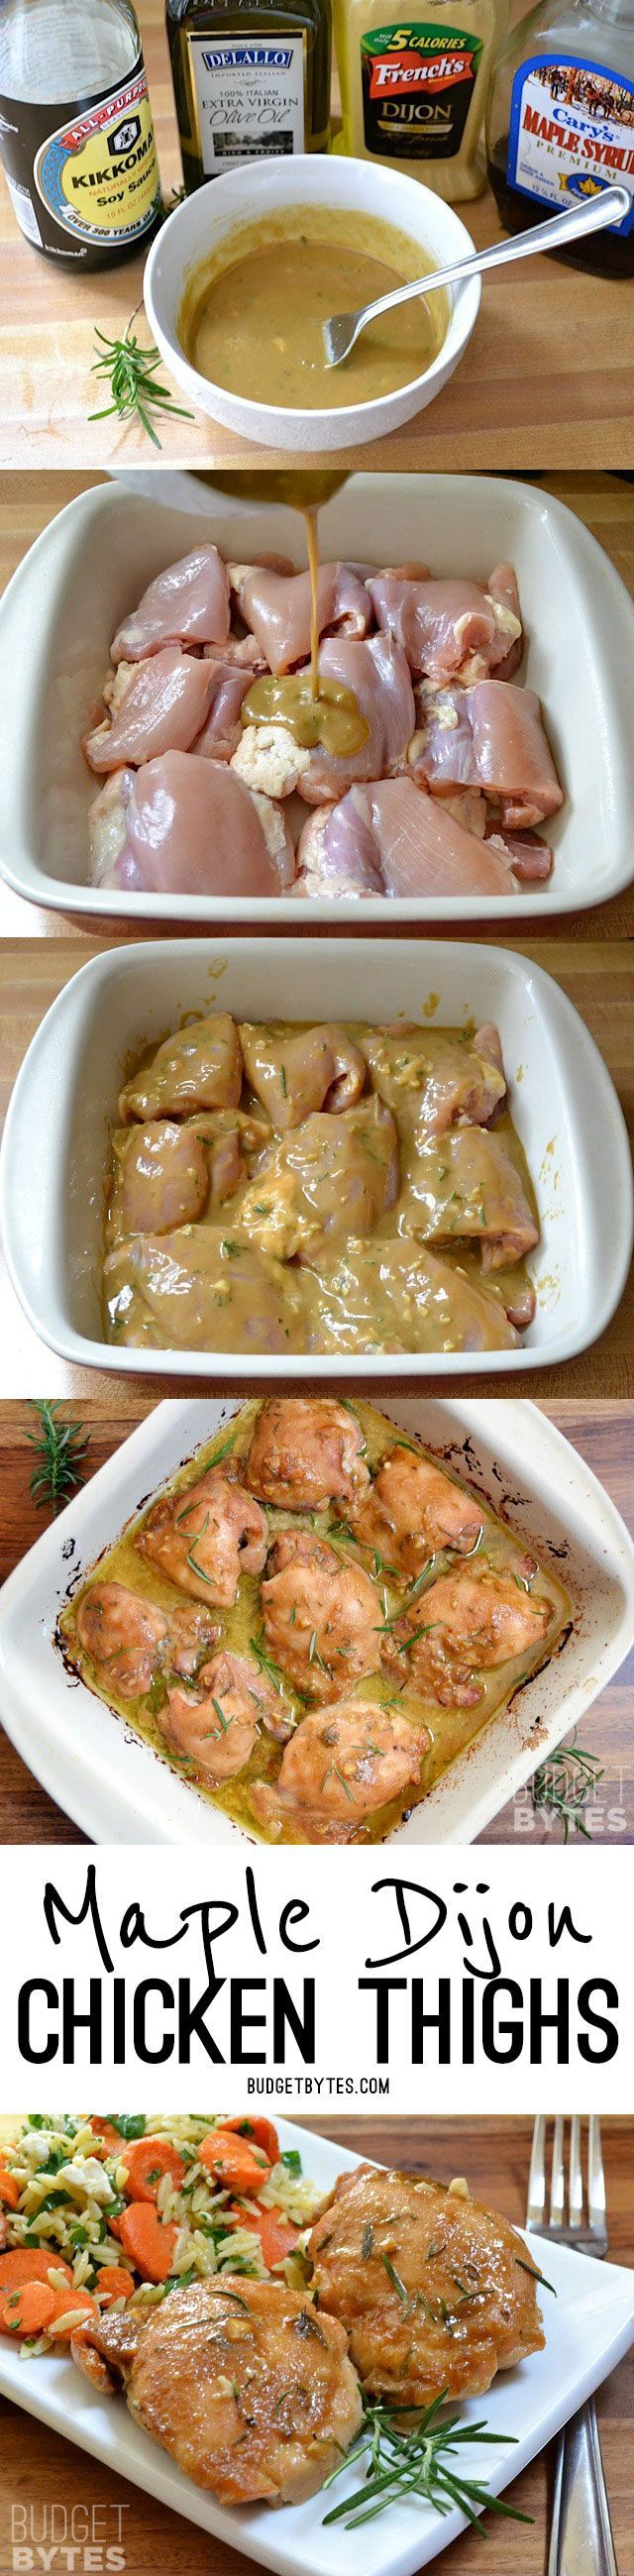 You won't find an easier, more flavorful dish than these Maple Dijon Chicken Thighs. Sweet and savory, this dish is a family pleaser. @budgetbytes